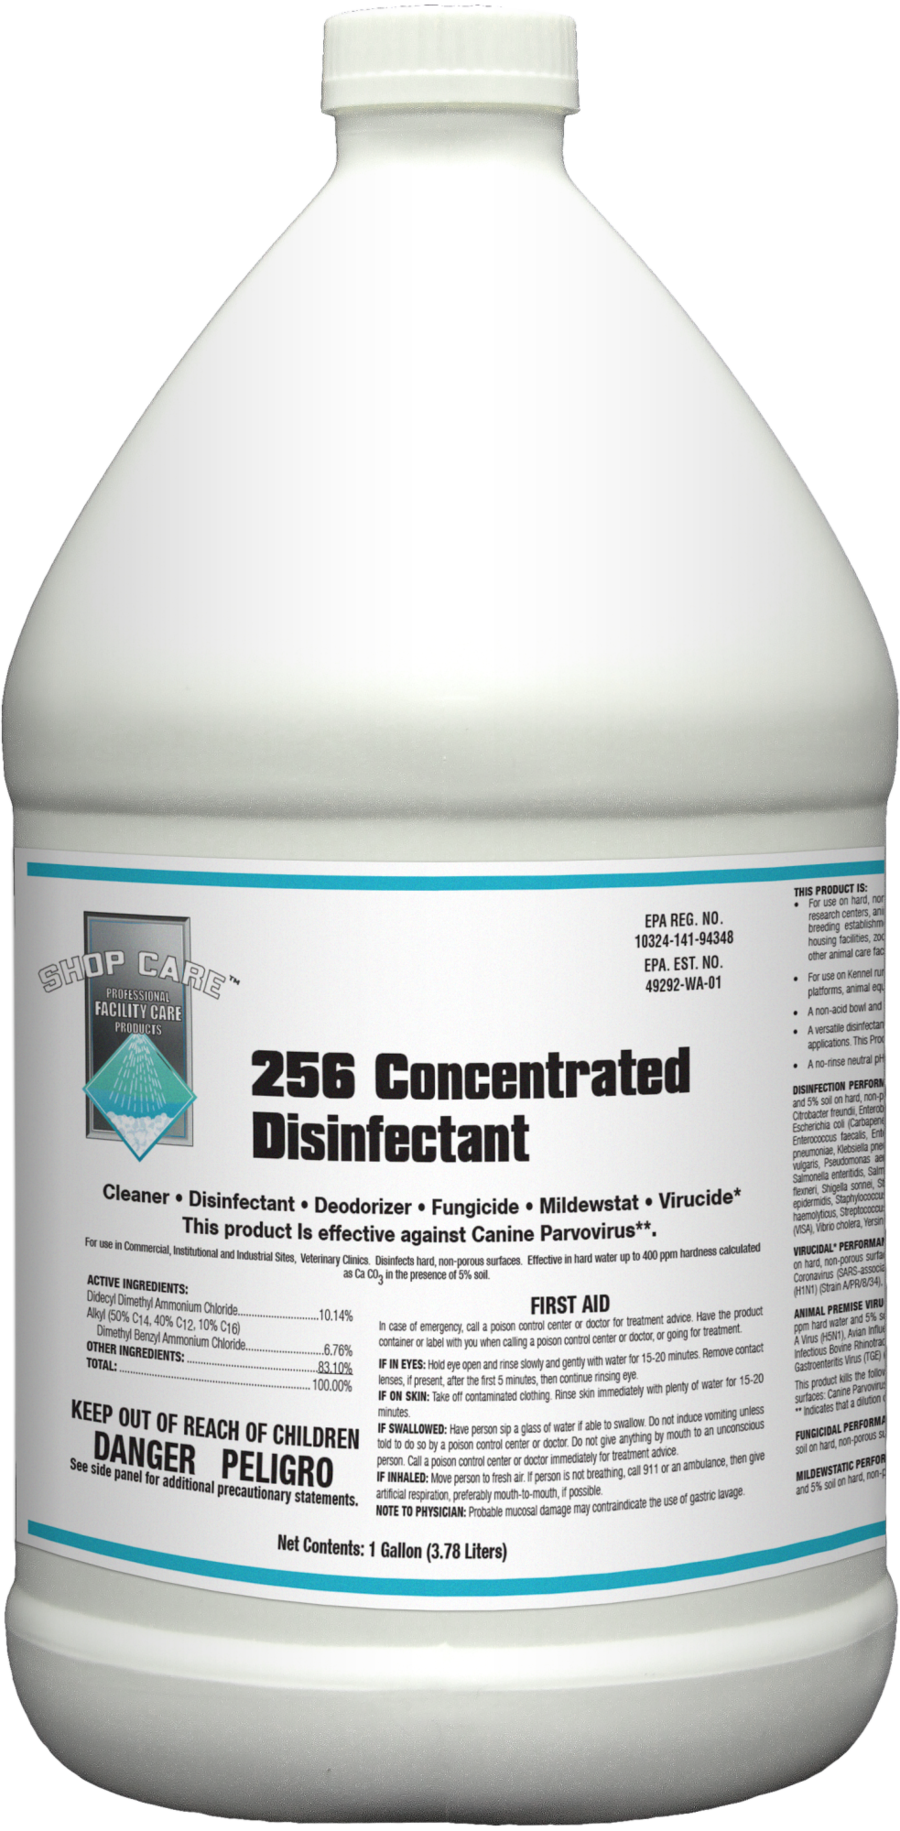 256 Concentrated Disinfectant